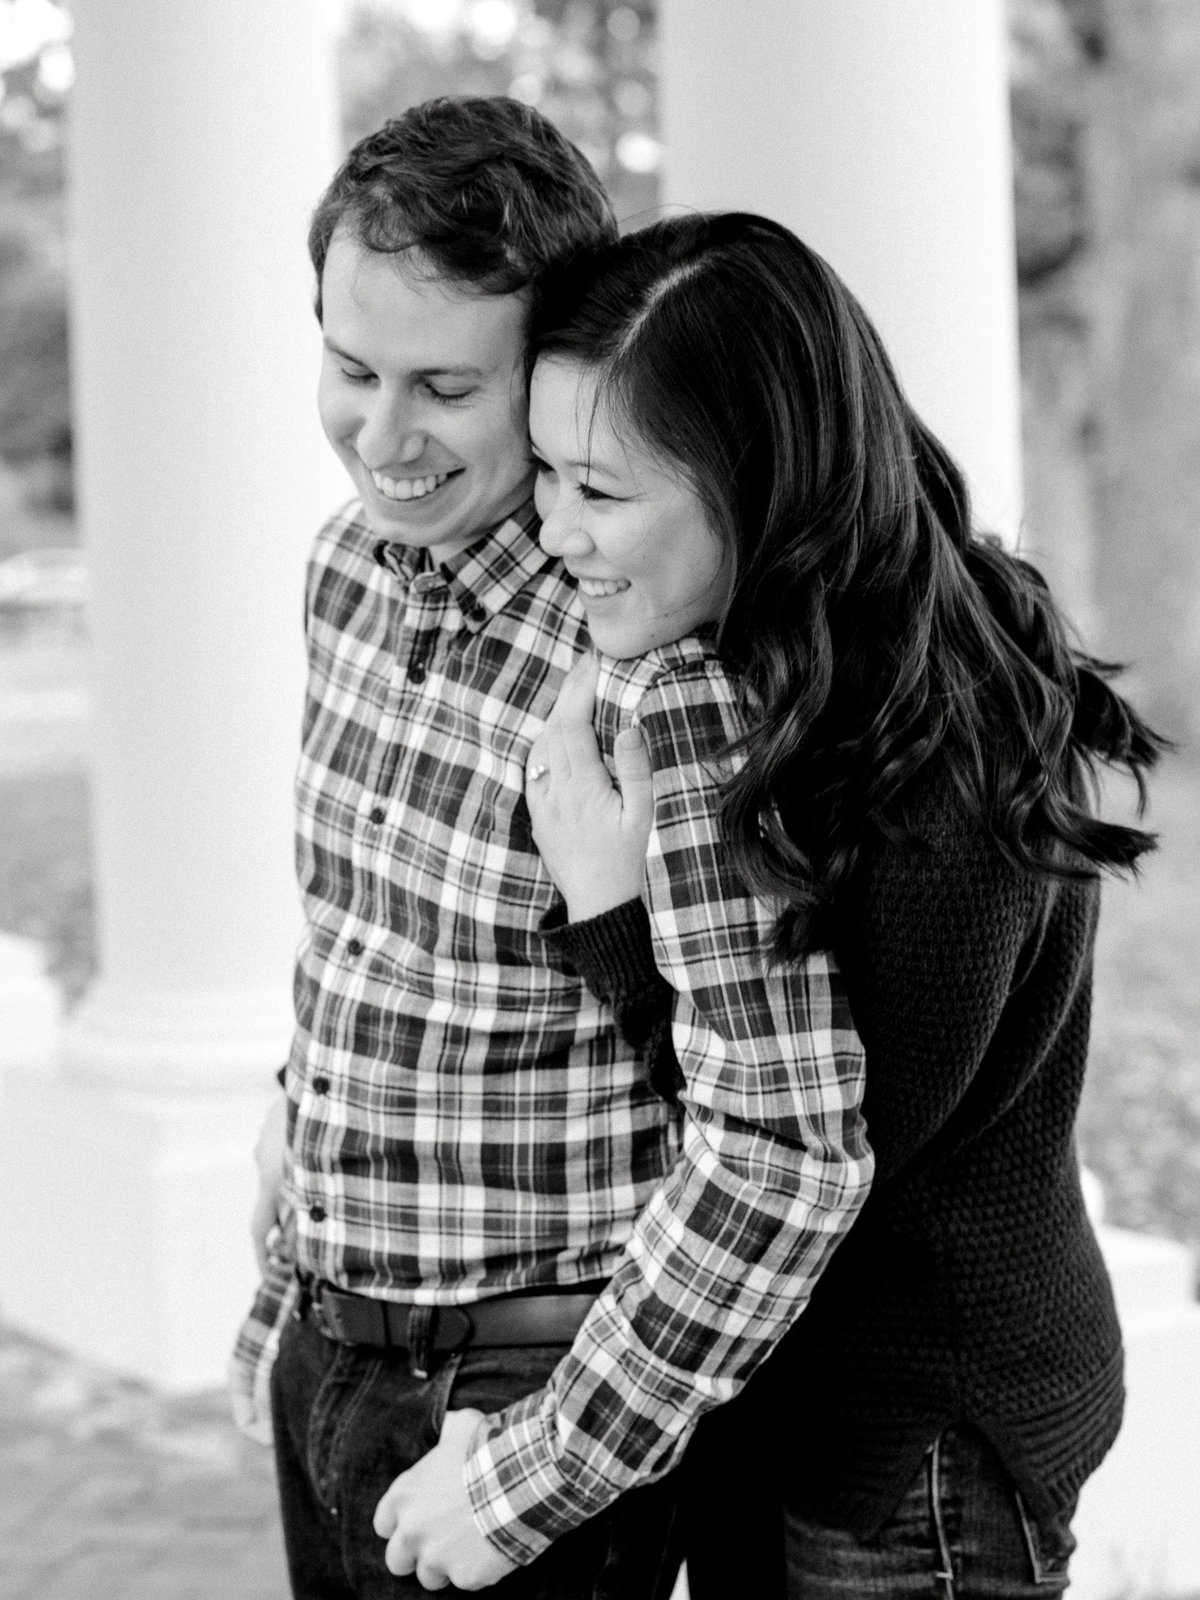 FACEBOOK-Monica and Justin Engagement Session-2